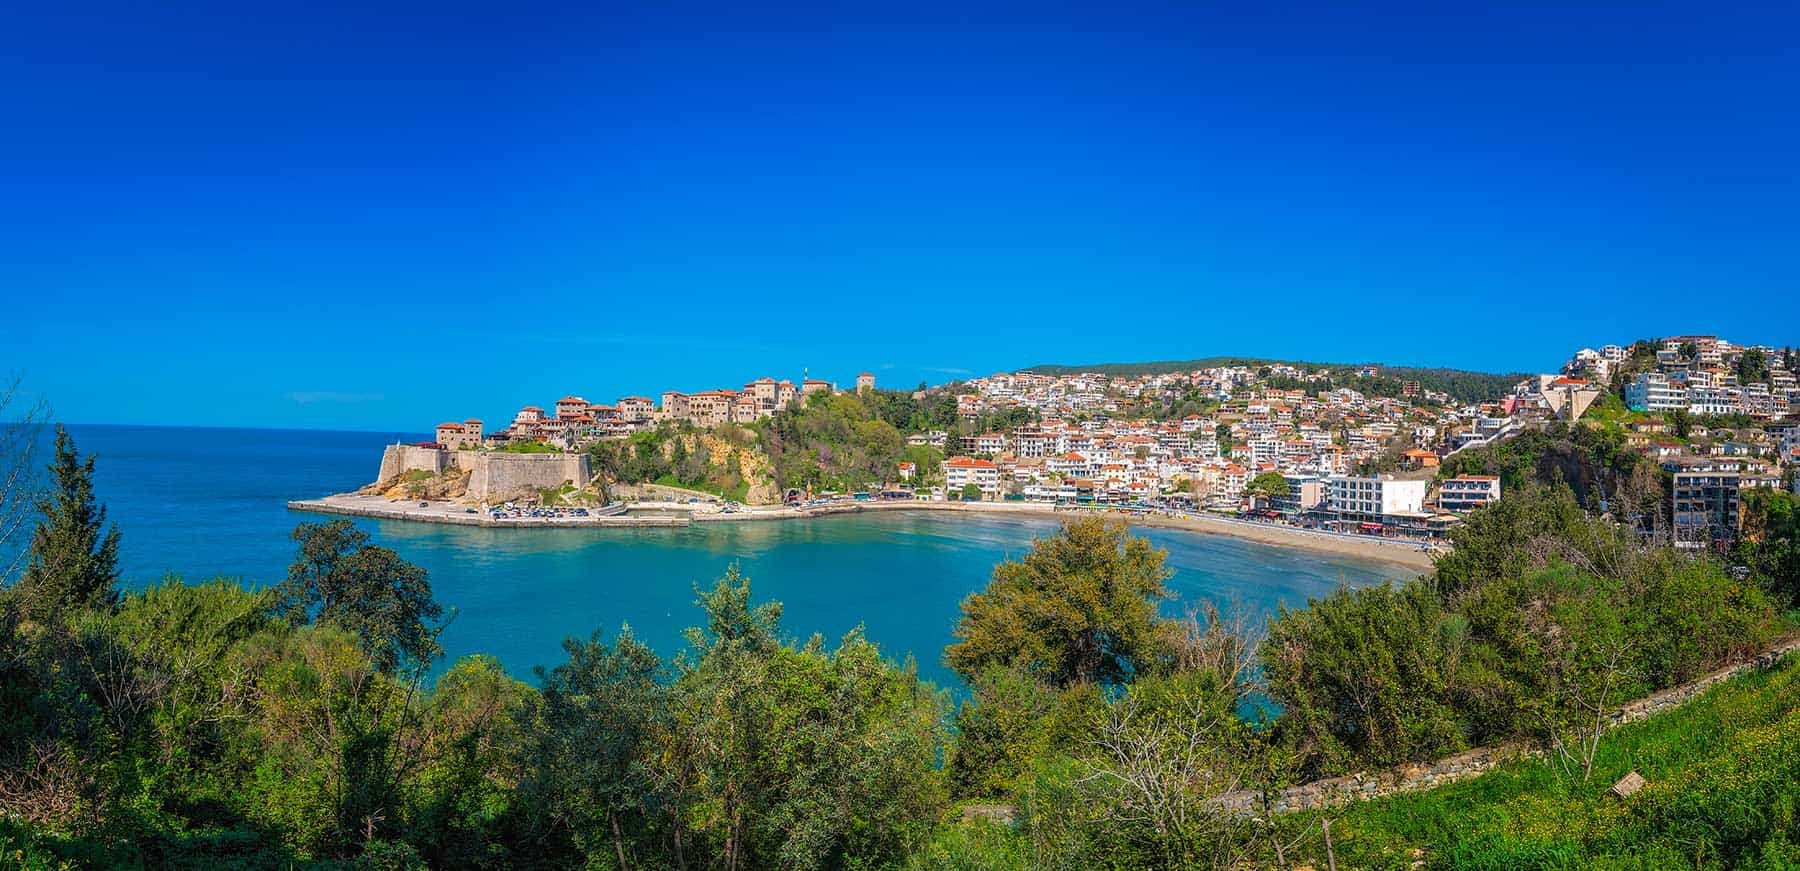 Panoramic view of the old town in Ulcinj